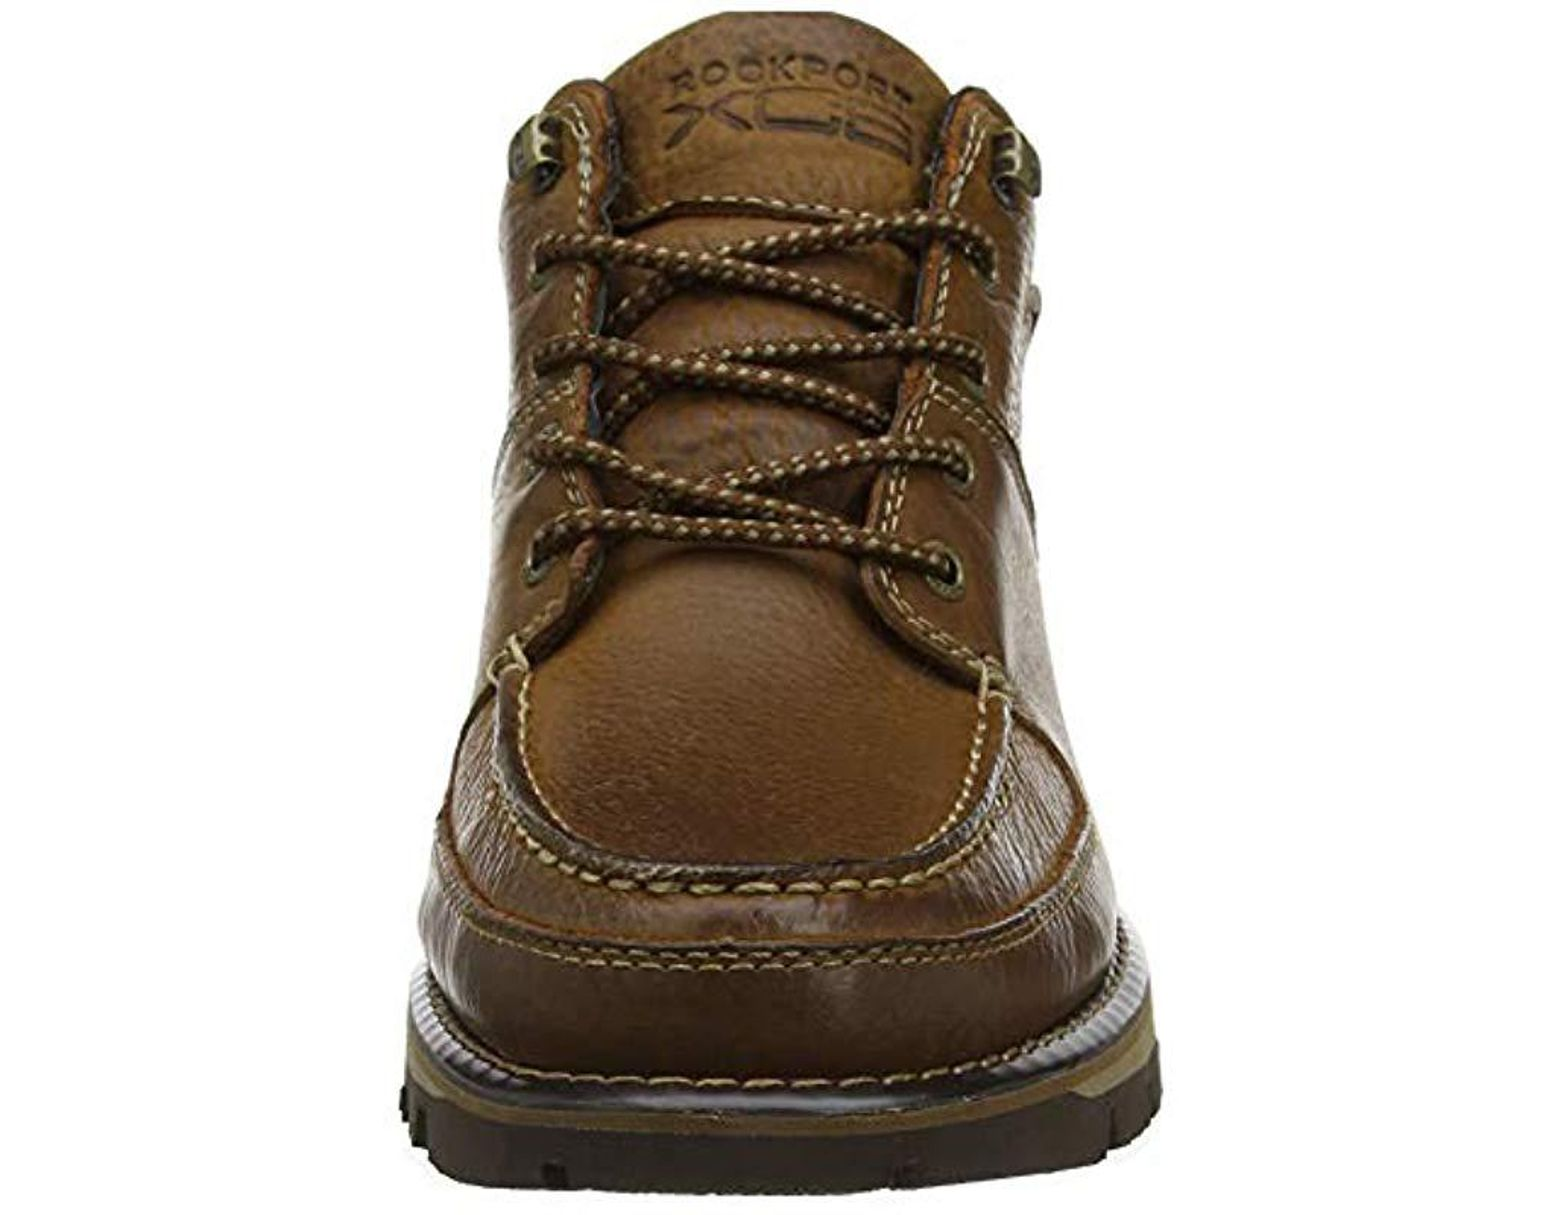 998d668a656 Rockport Umbwe Ii Hiker Chukka Classic Boots in Brown for Men - Save ...